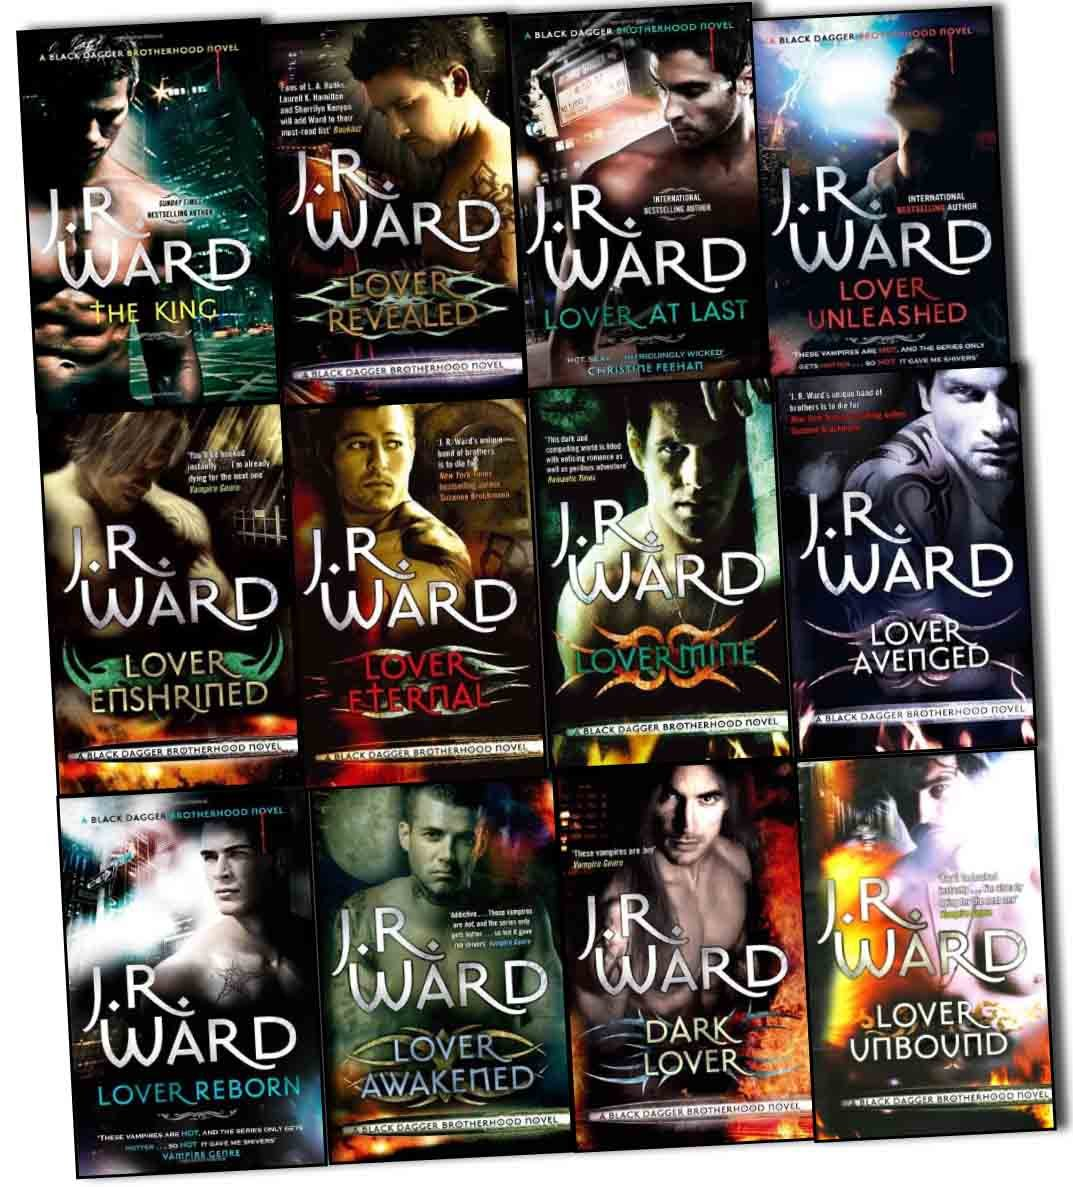 J R Ward Black Dagger Brotherhood Series 12 Books Collection Pack Set  (dark Lover, Lover Eternal, Lover Awakened, Lover Revealed, Lover Unbound,